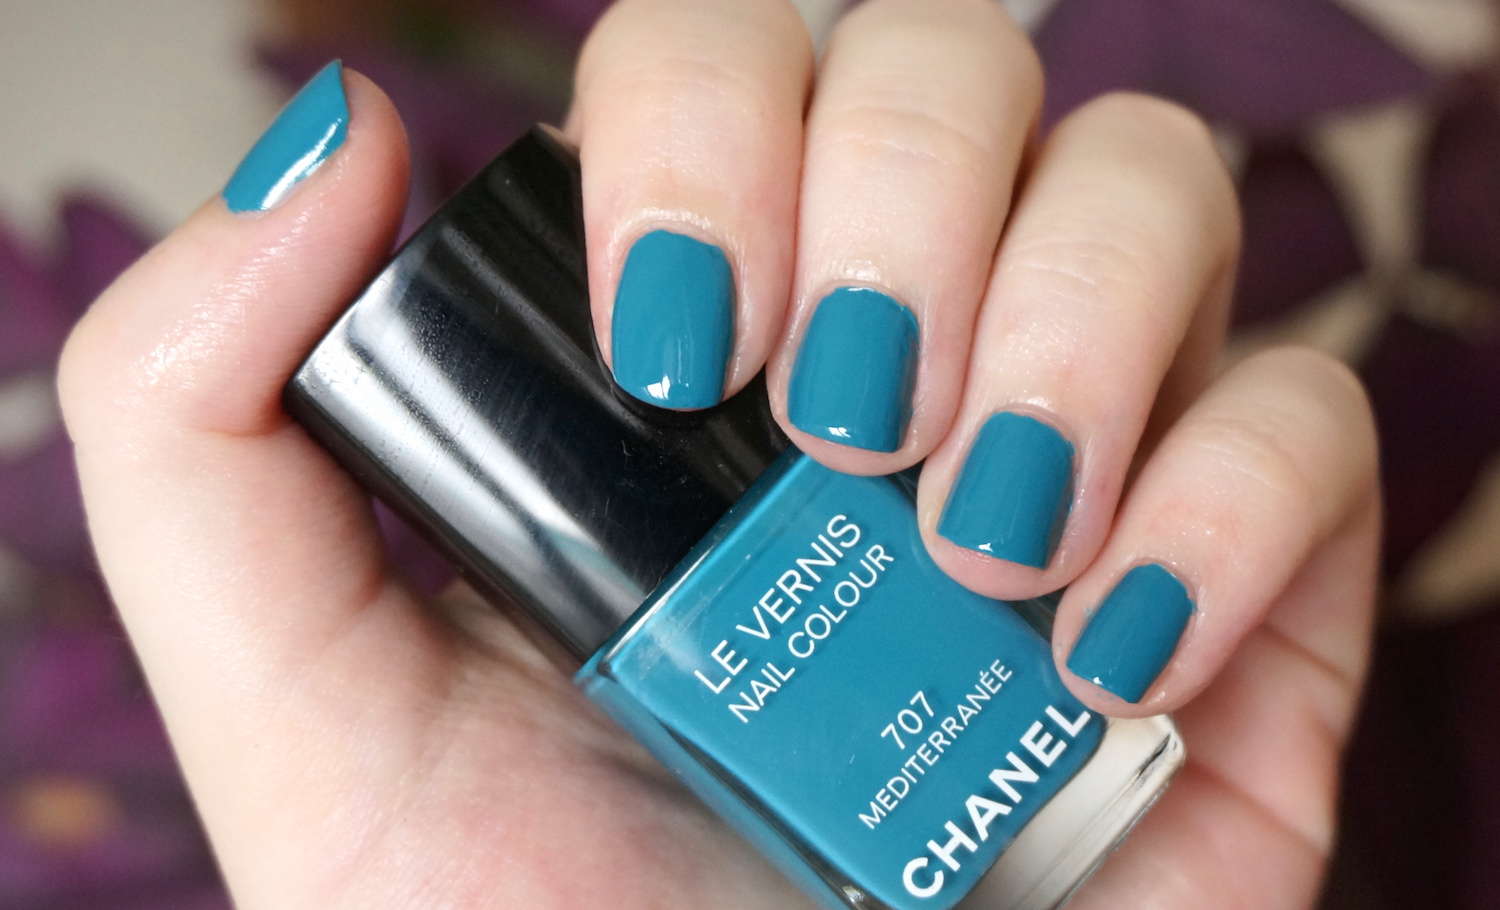 Chanel Mediterranee nail polish review | Through The Looking Glass